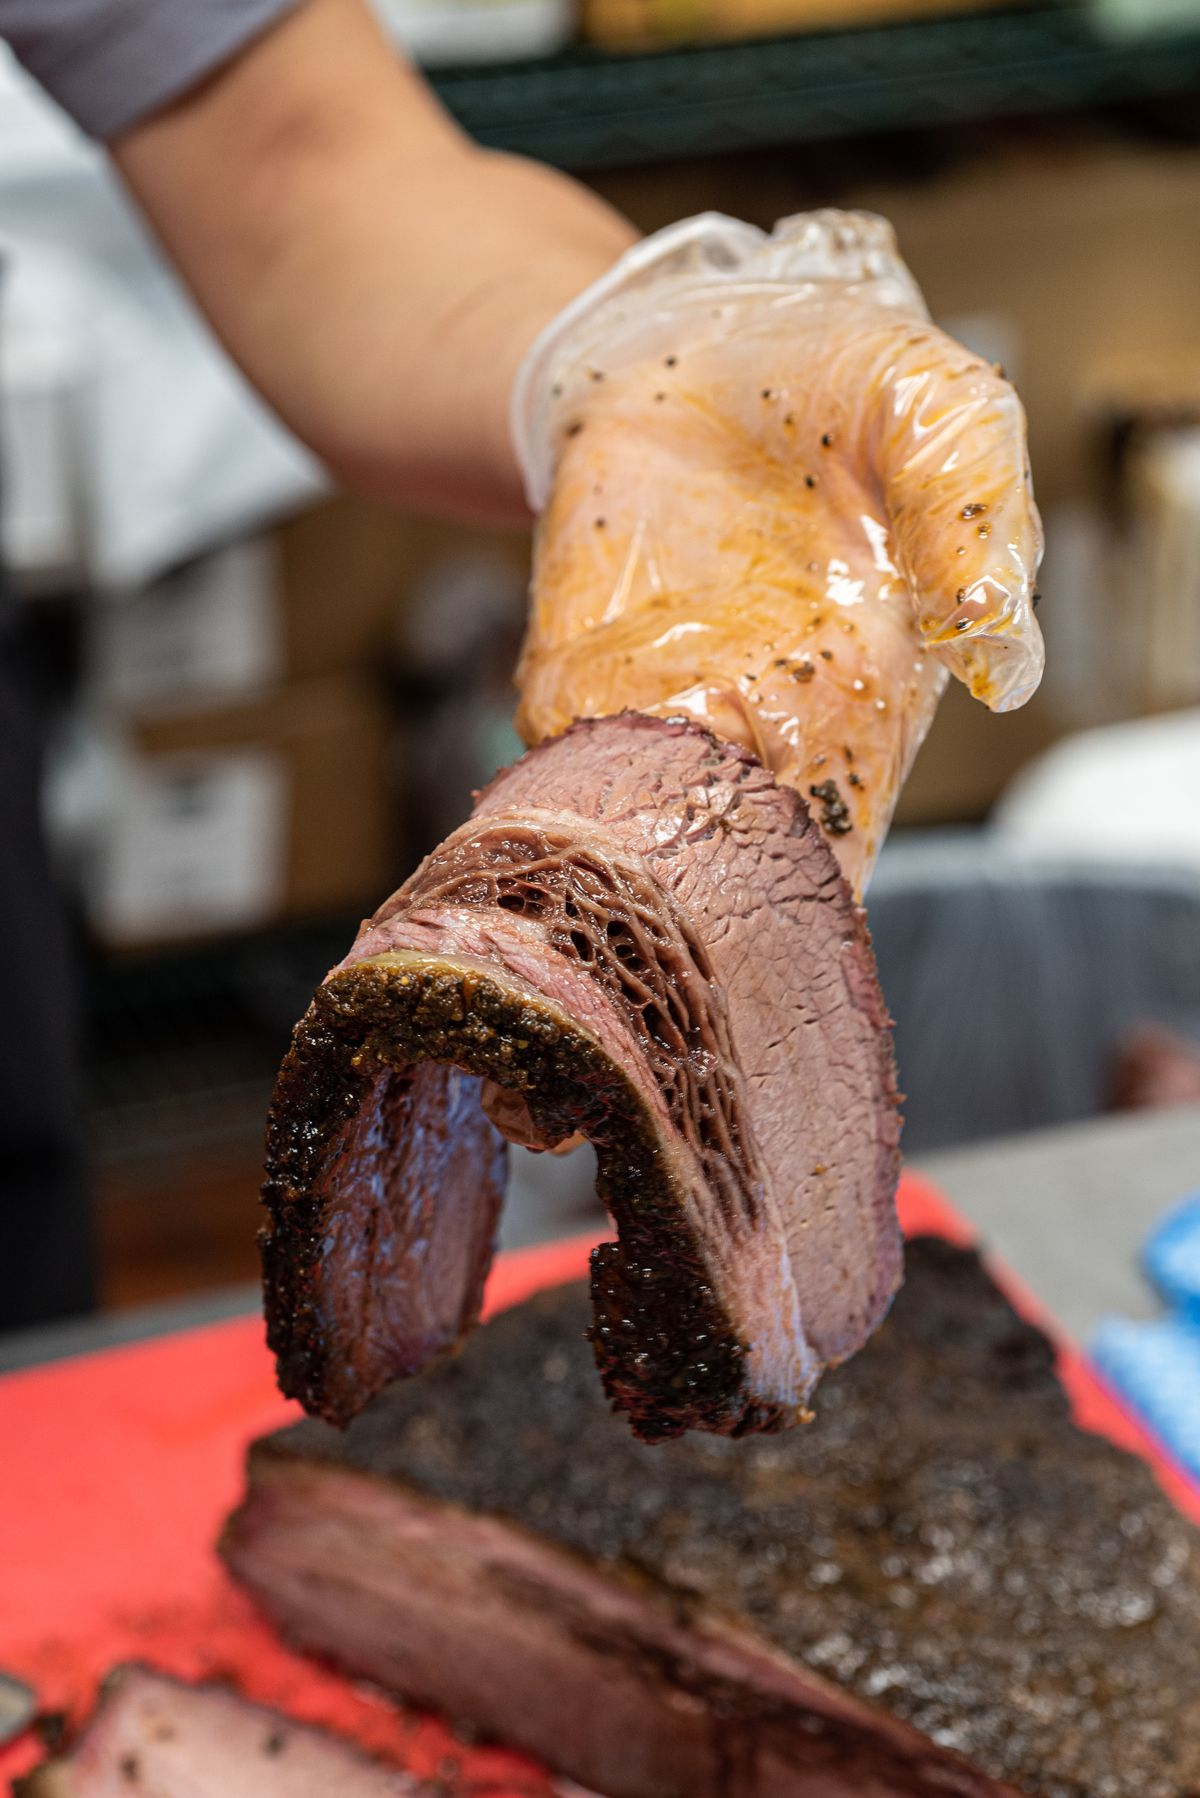 Holding a fatty piece of brisket as it bends over a hand.